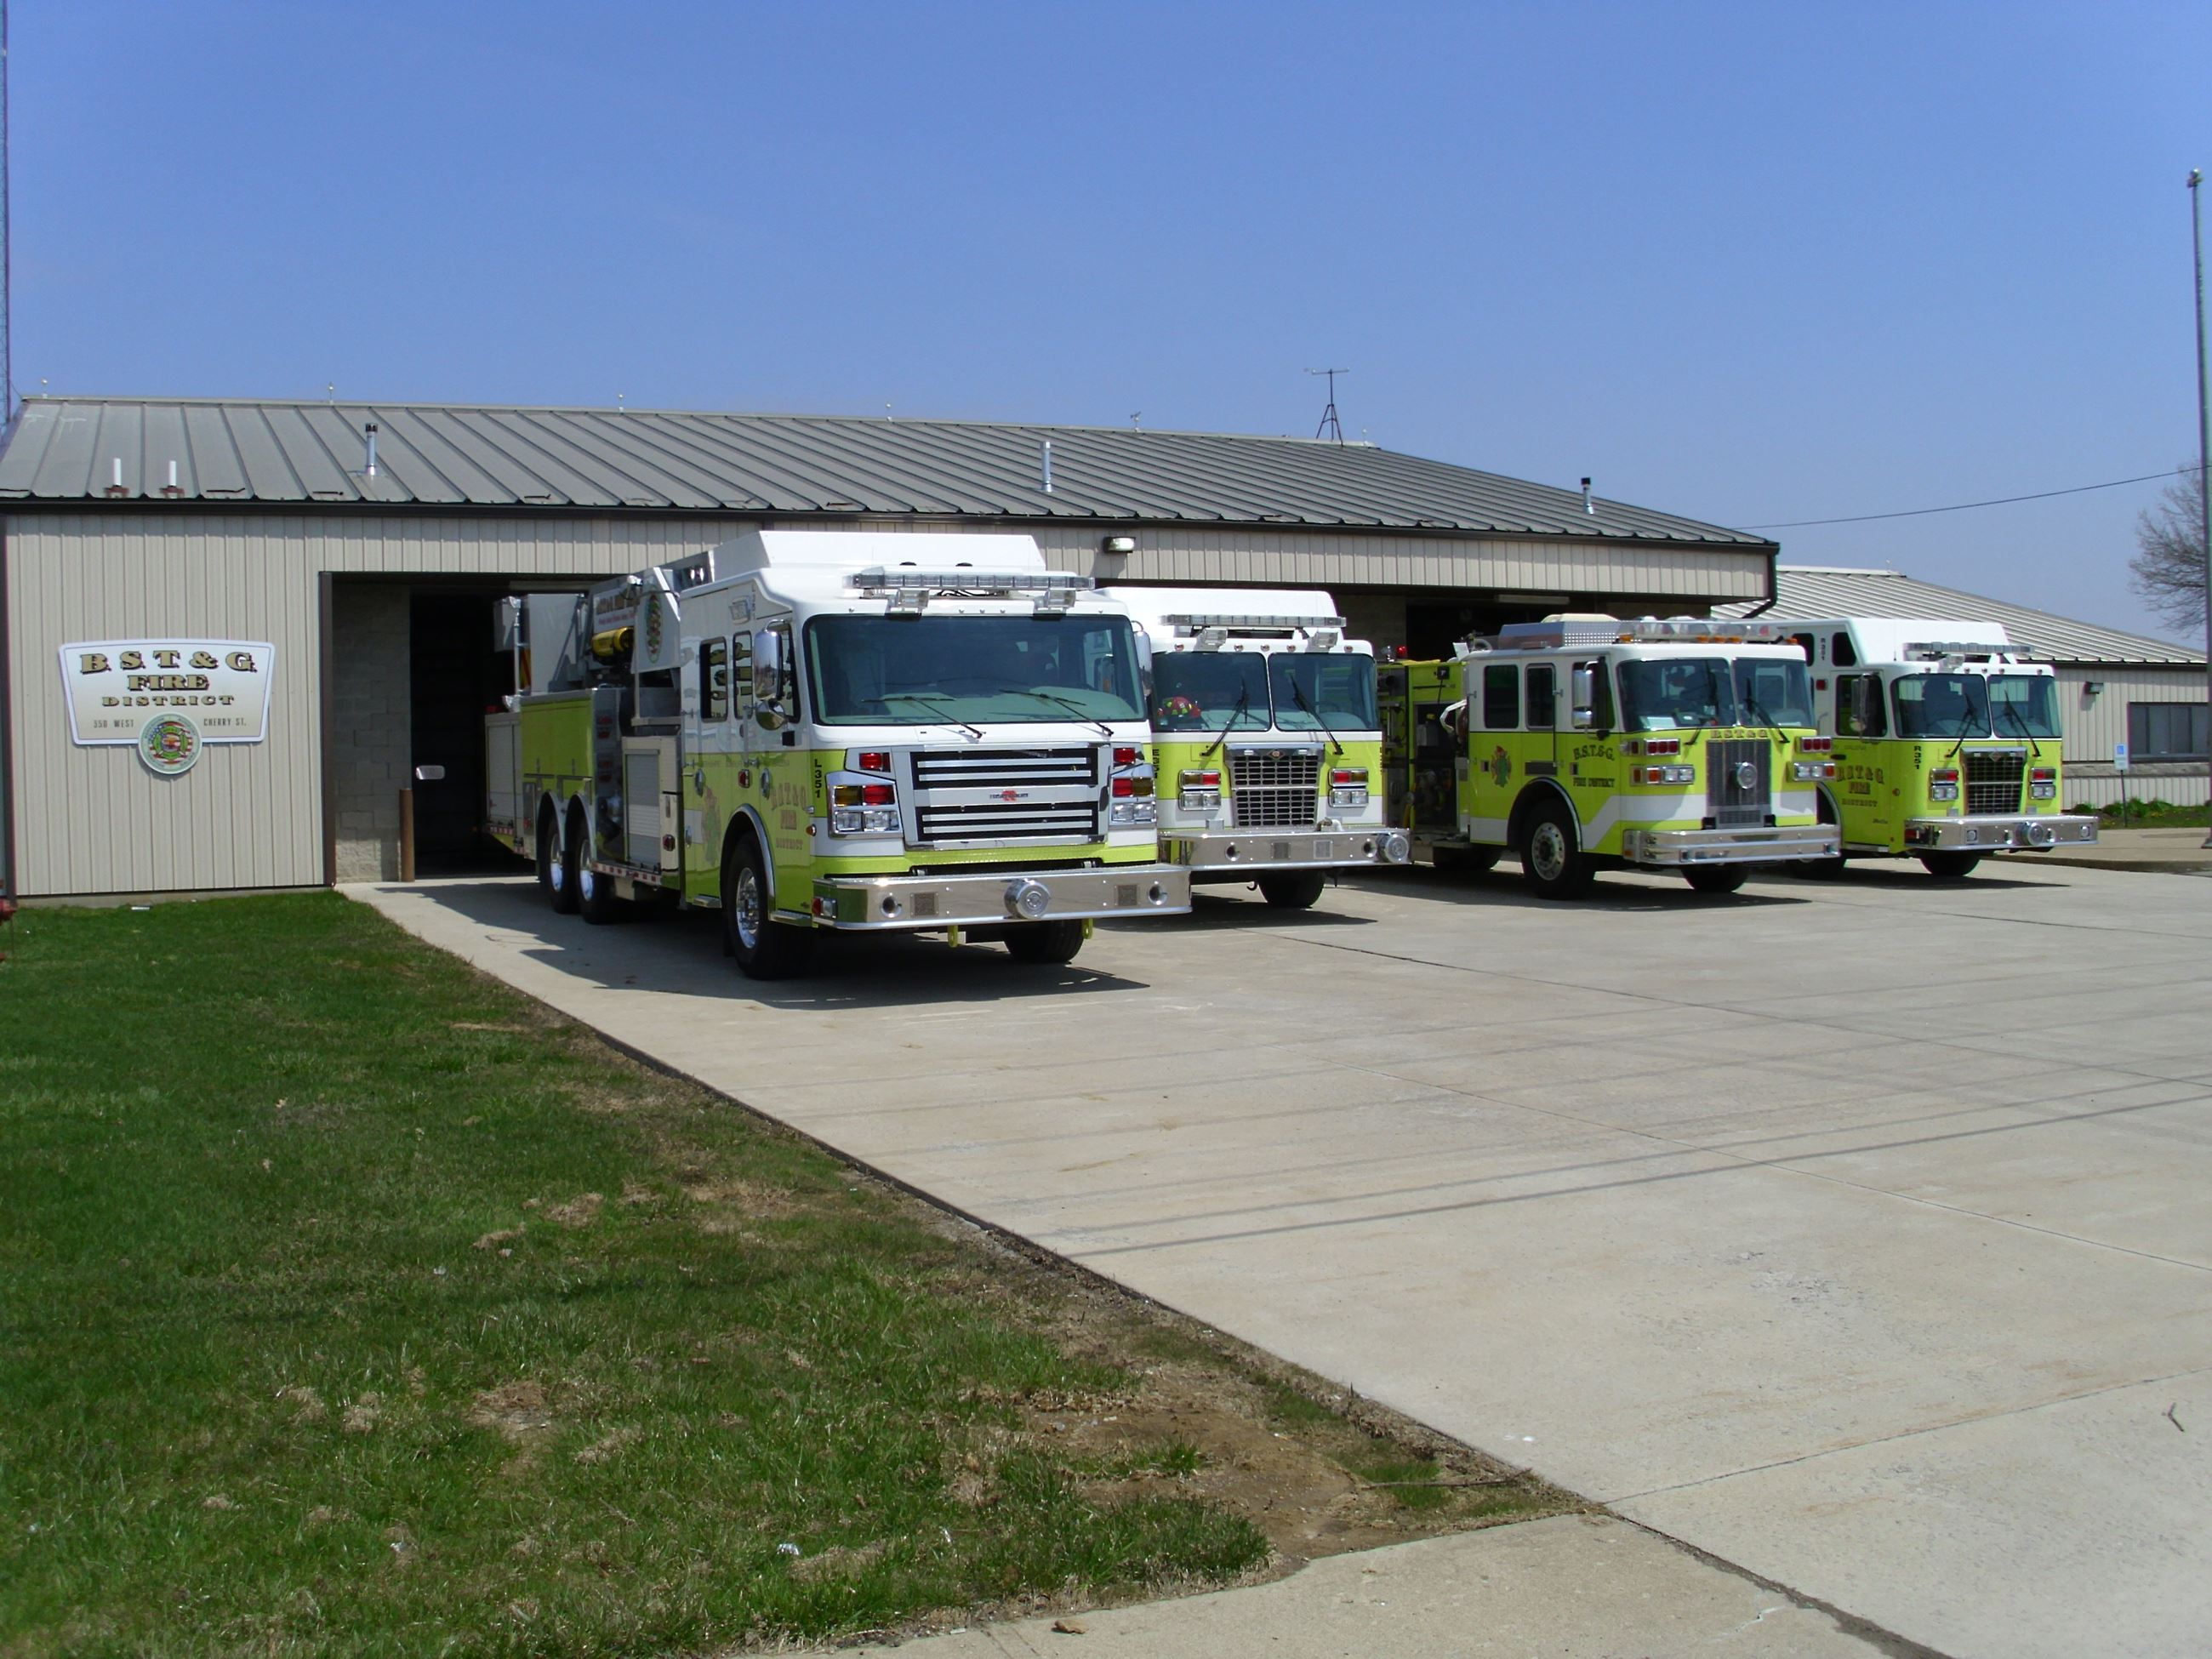 The BSTG Fire Station with four fire trucks lined up outside